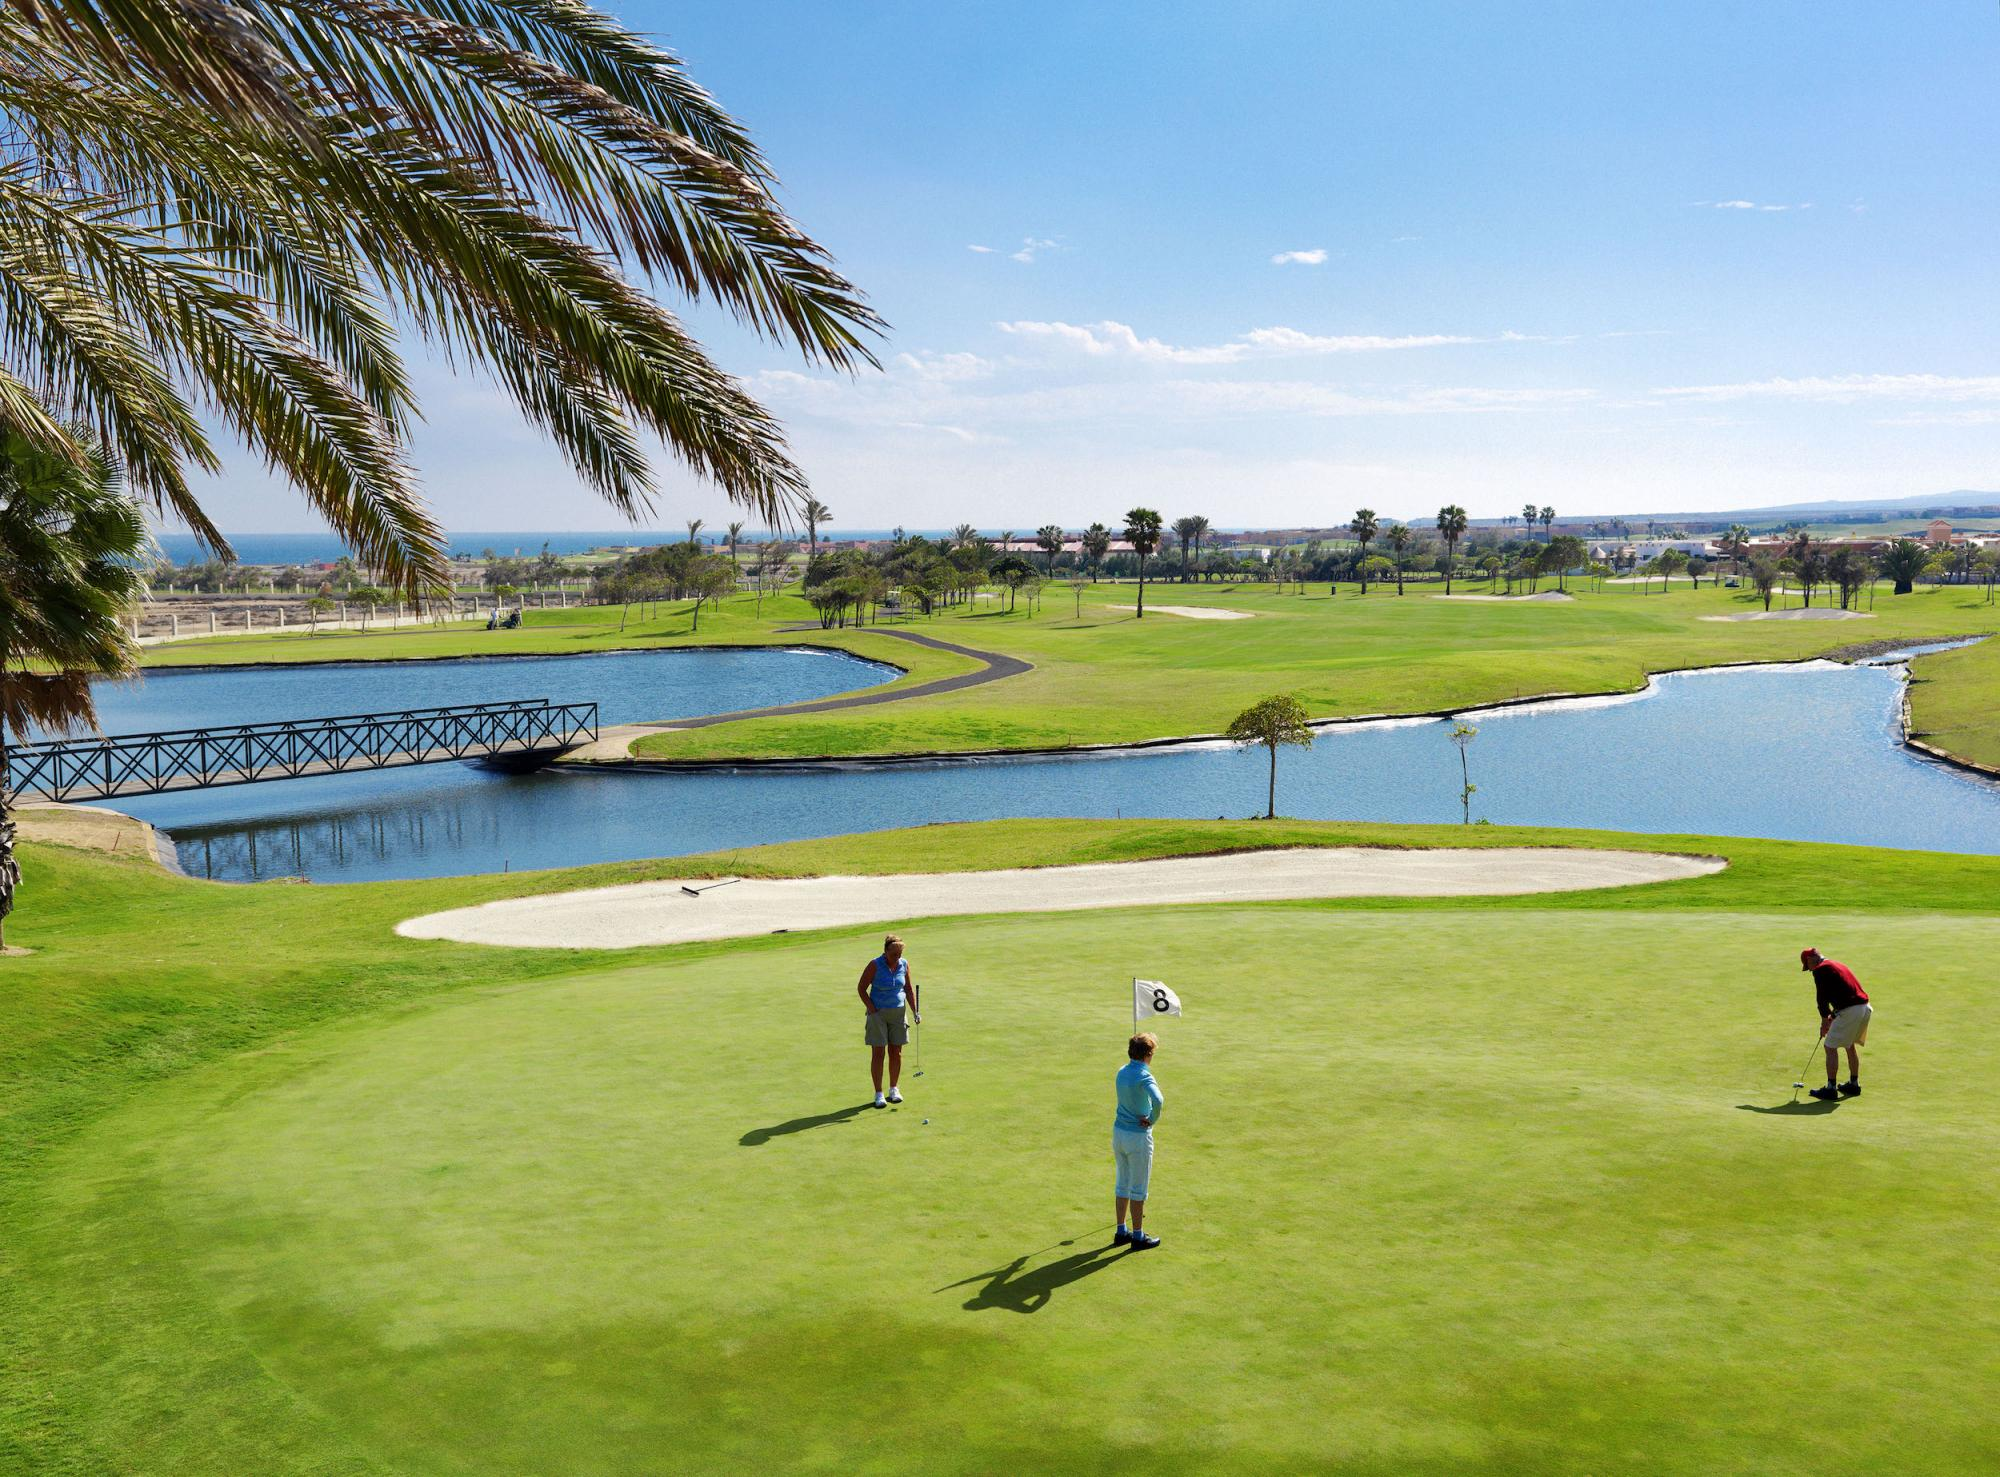 View Fuerteventura Golf Club's beautiful golf course in vibrant Fuerteventura.